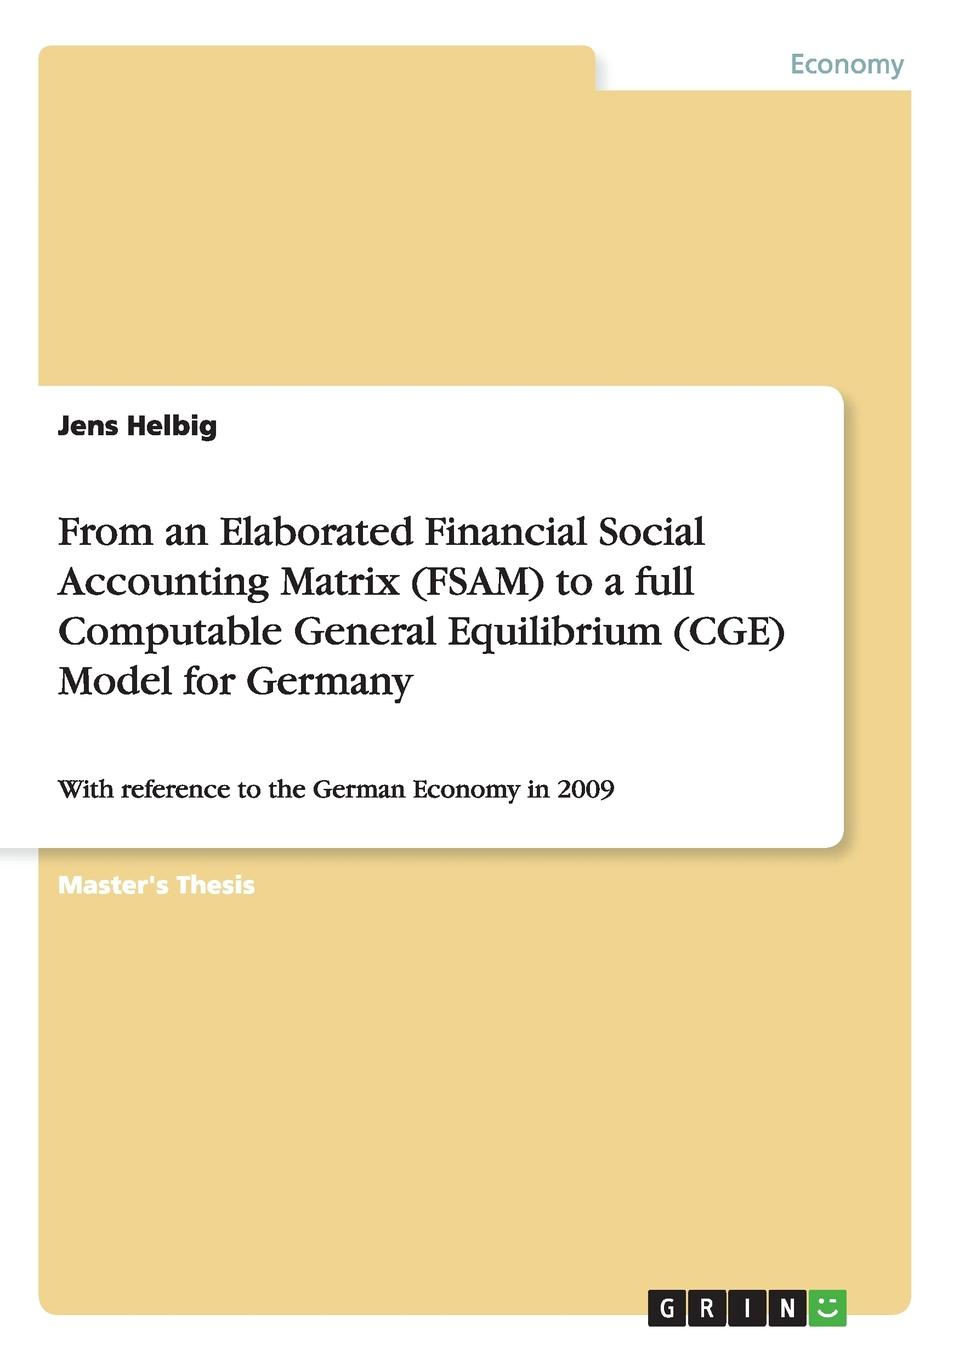 Jens Helbig From an Elaborated Financial Social Accounting Matrix (FSAM) to a full Computable General Equilibrium (CGE) Model for Germany